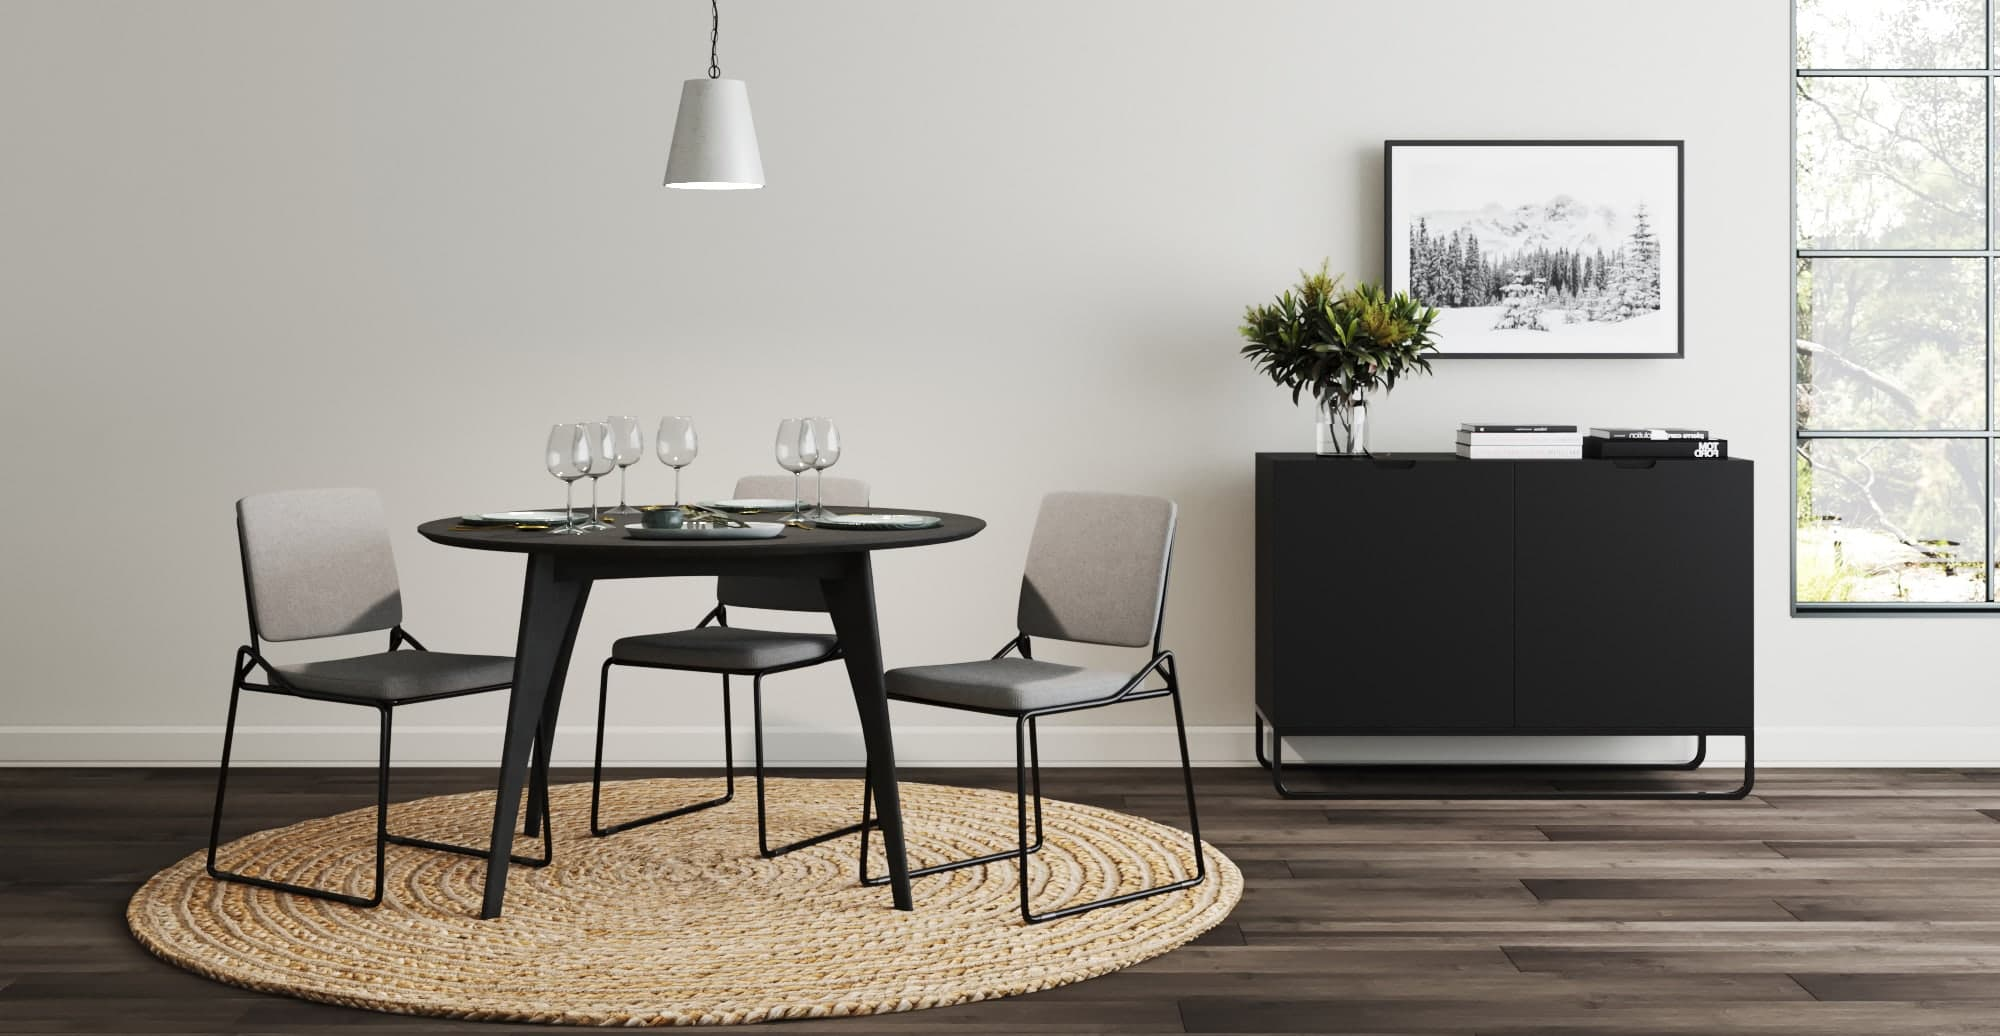 brosa glasser minimalist dining chairs black metal legs with angles in minimalist dining room